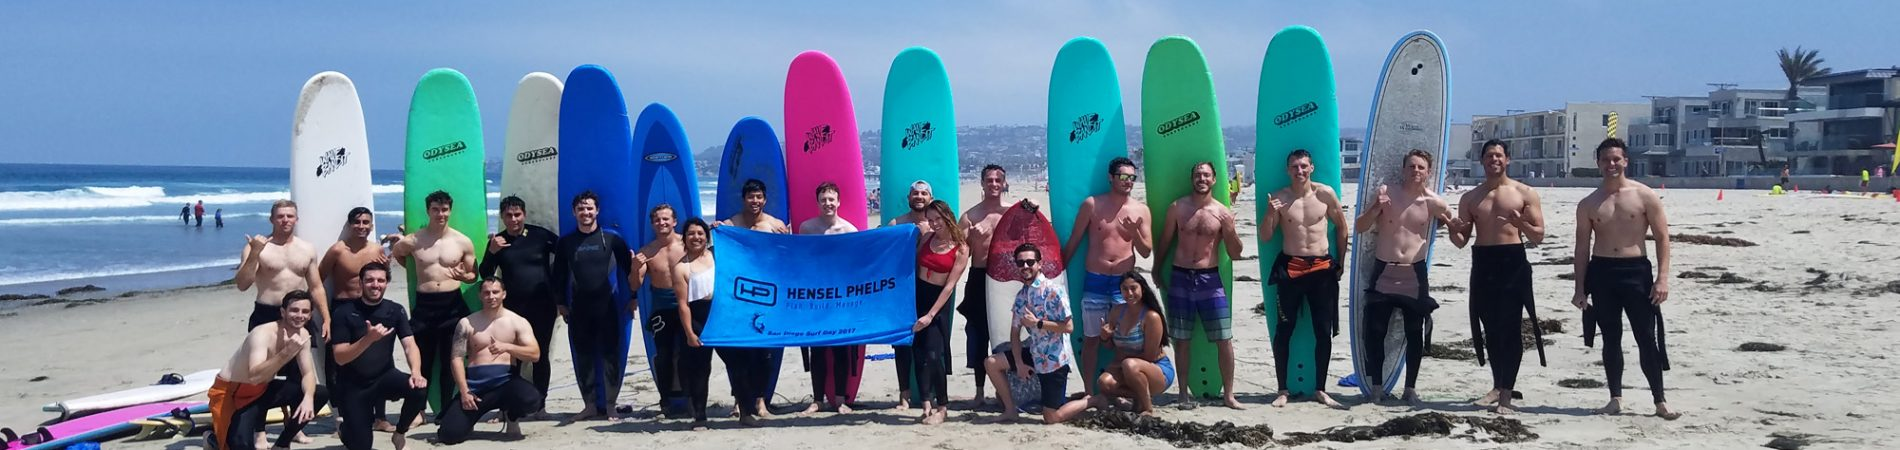 best surf camps san diego